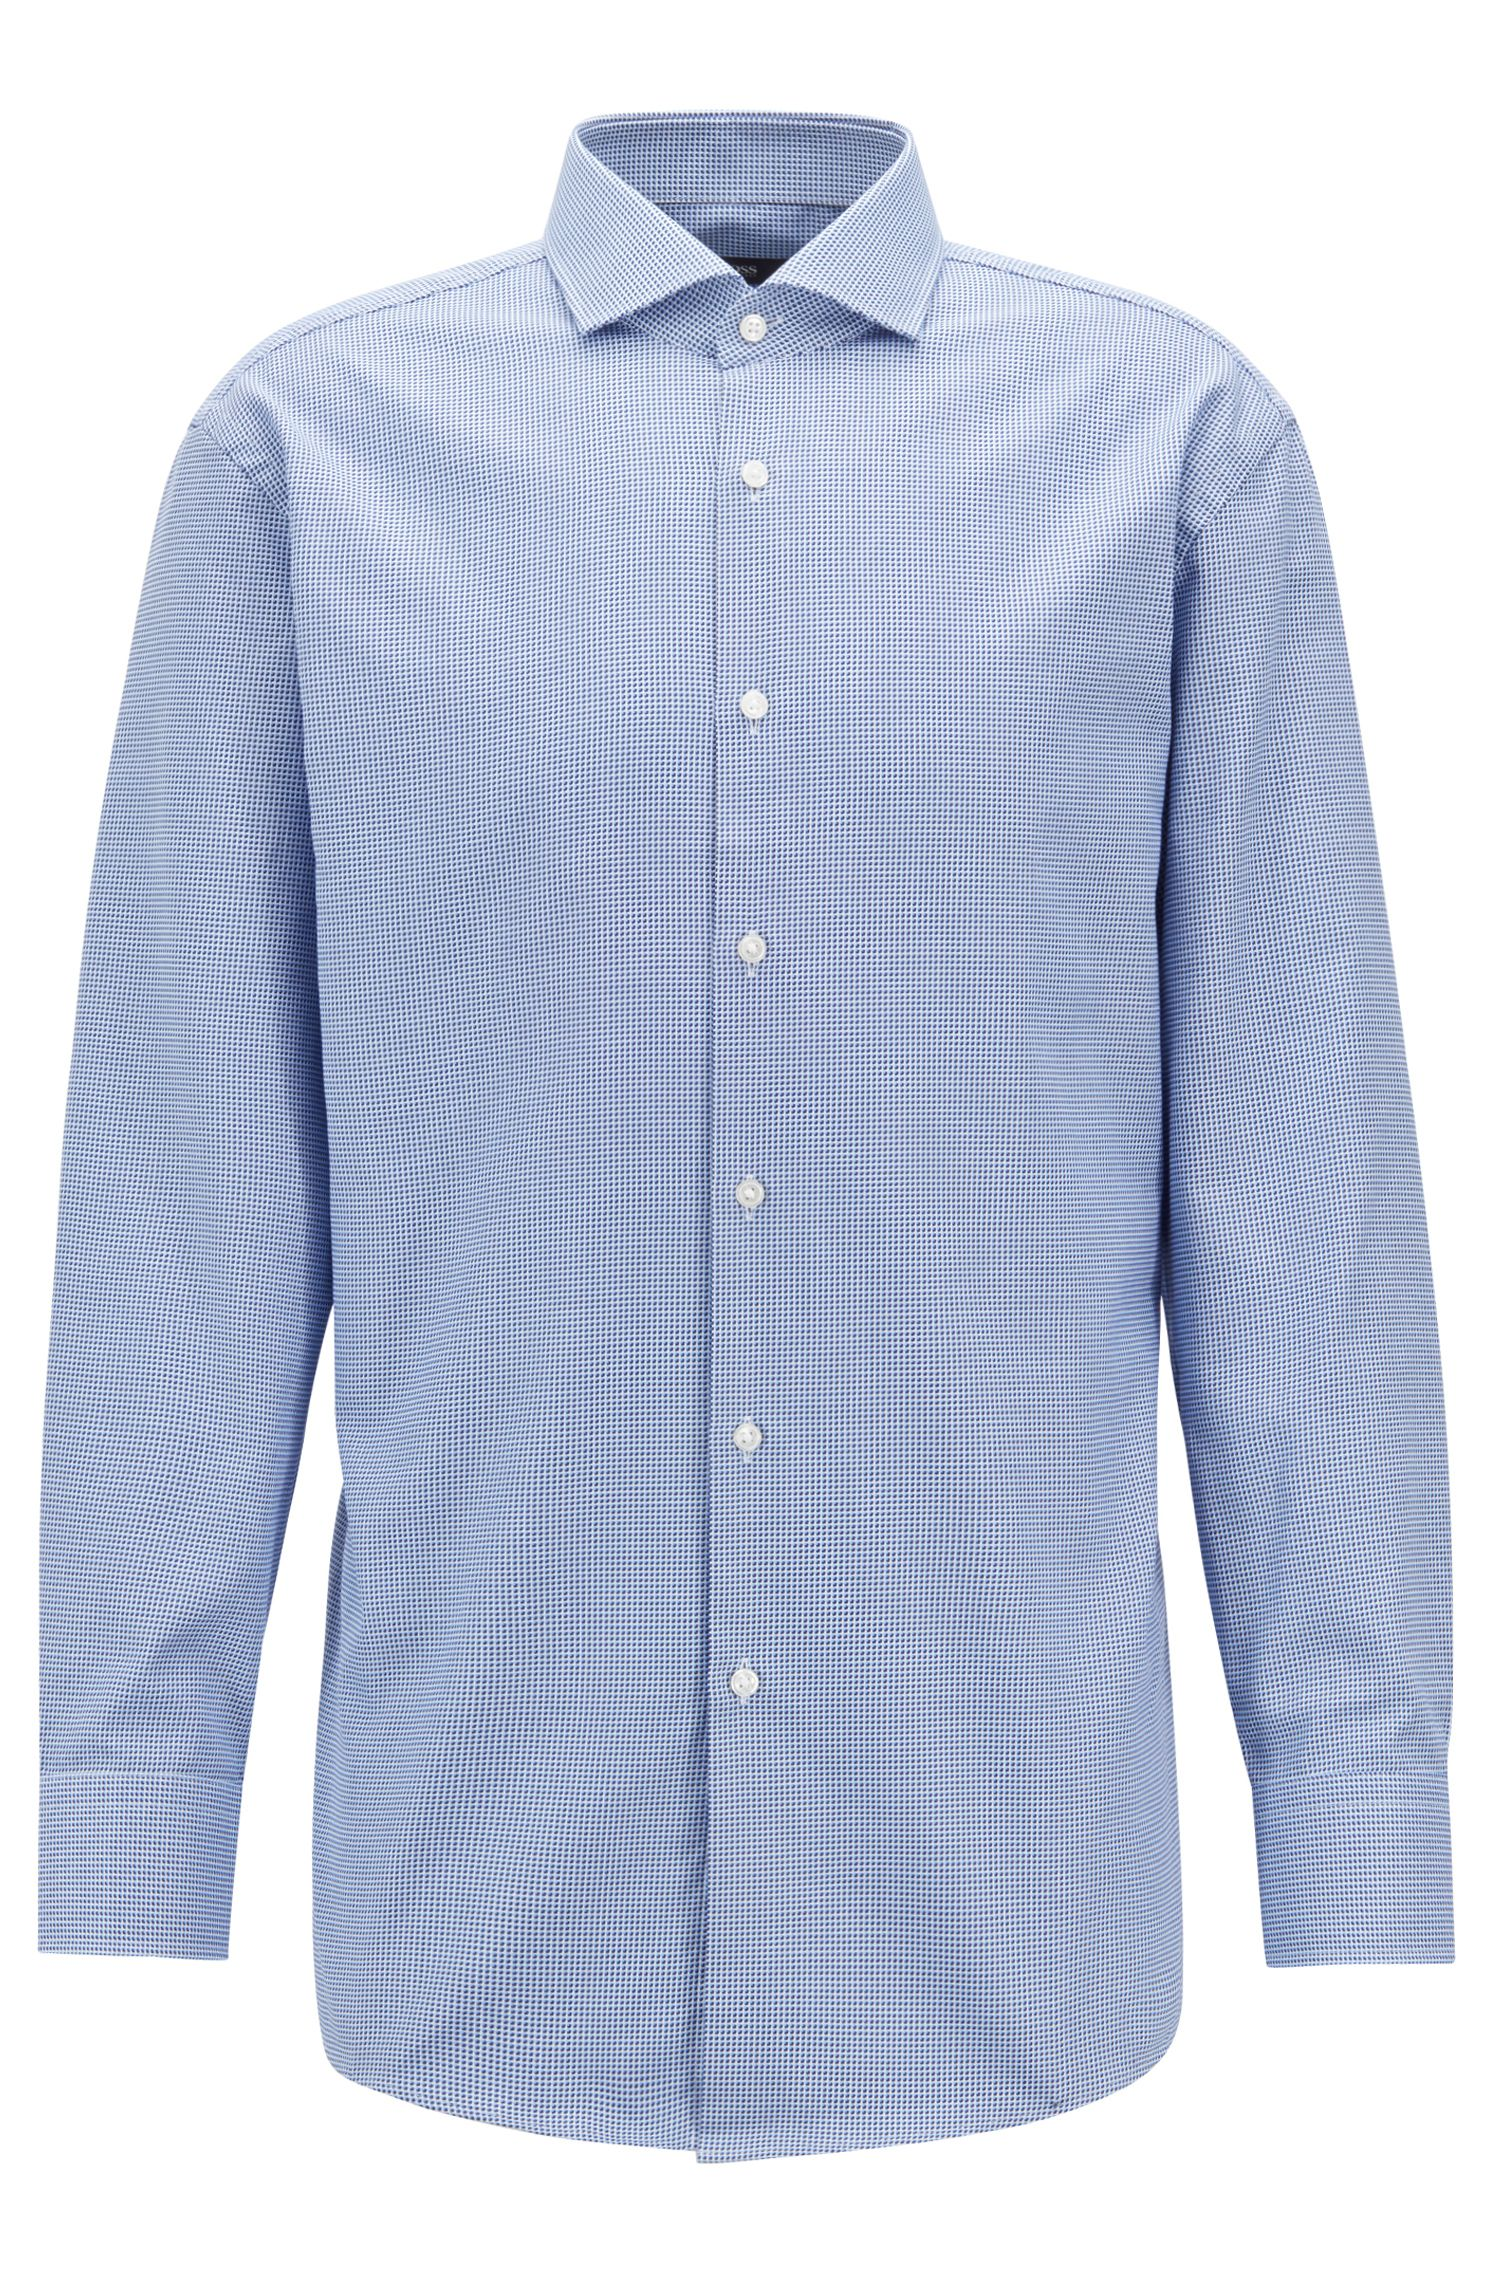 Slim-fit shirt with three-dimensional micro structure, Light Blue